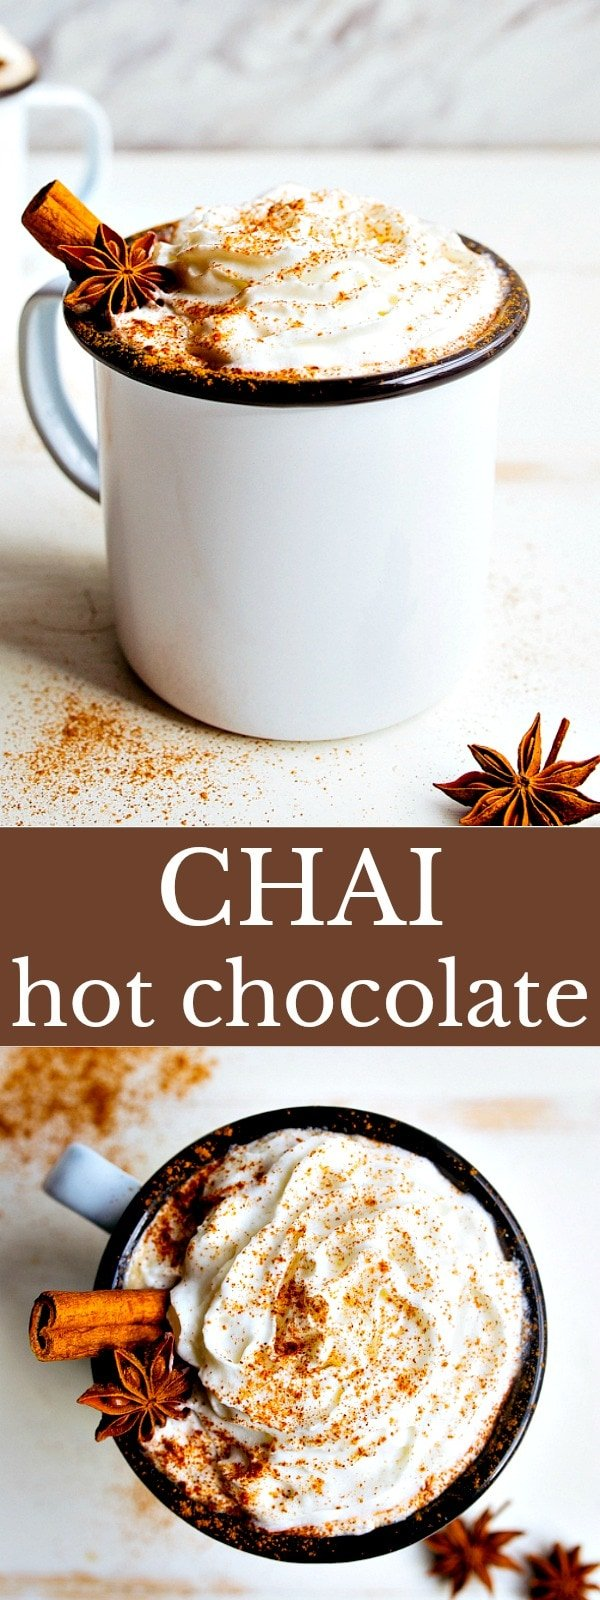 Chai Hot Chocolate Recipe for Two | Dessert for Two